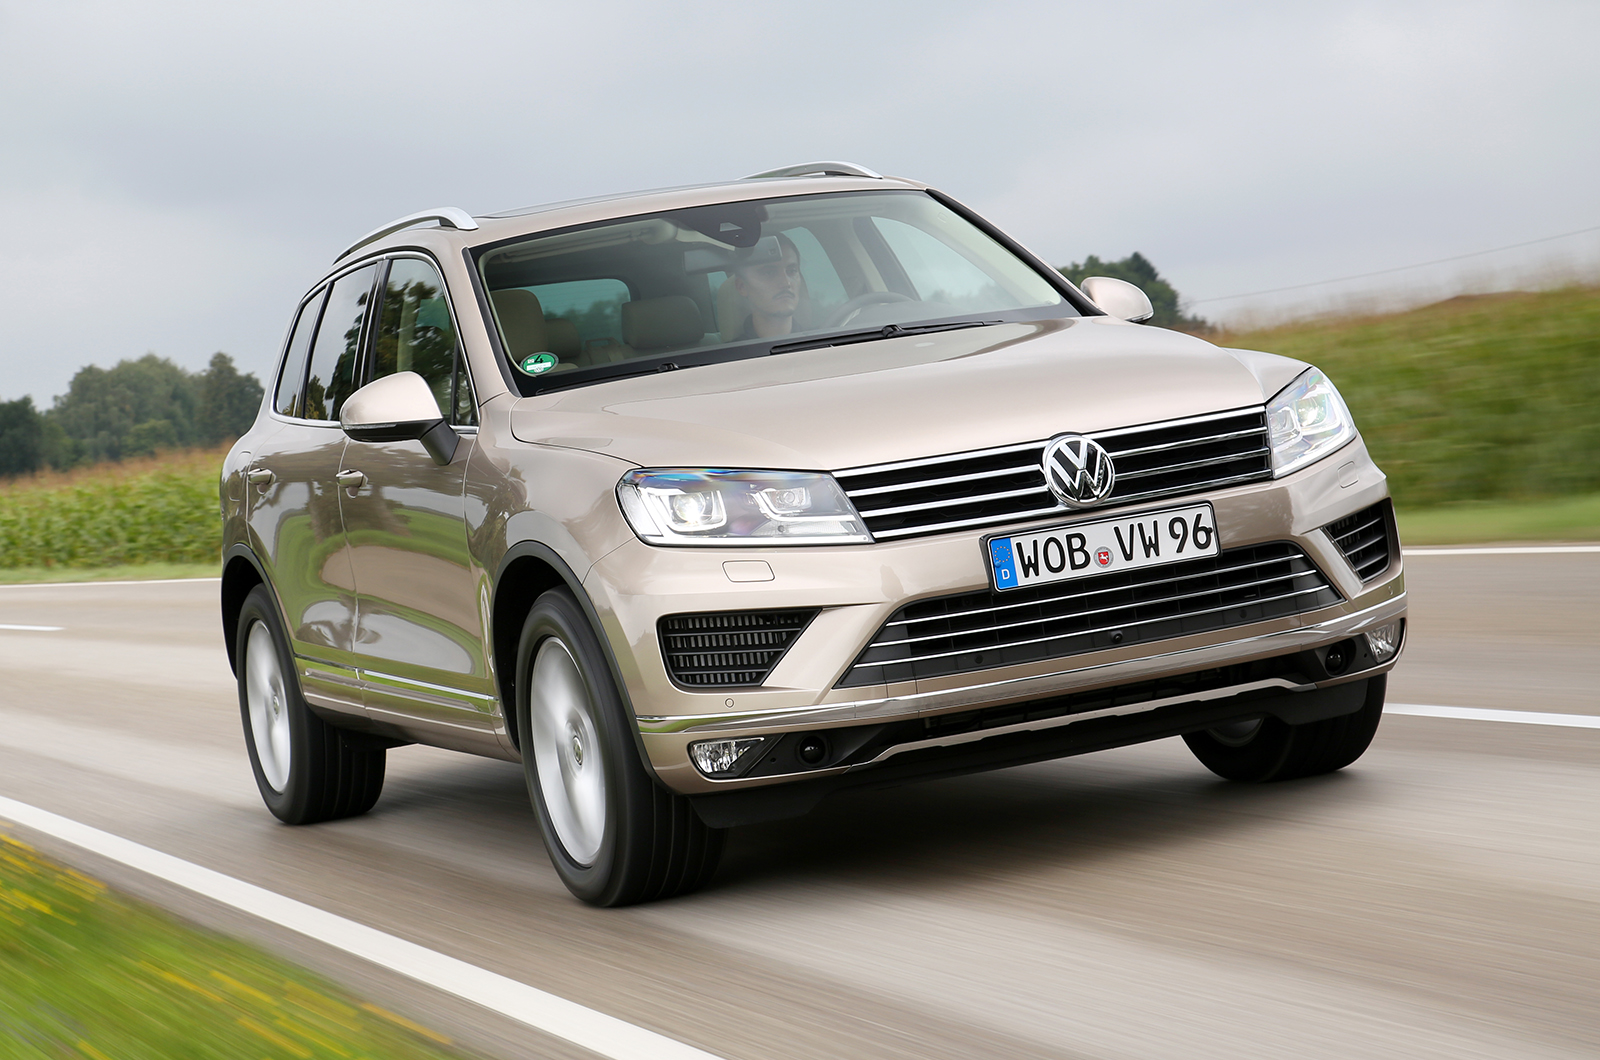 Volkswagen Touareg V6 Tdi Scr Bluemotion Technology 4motion First Drive Review Autocar